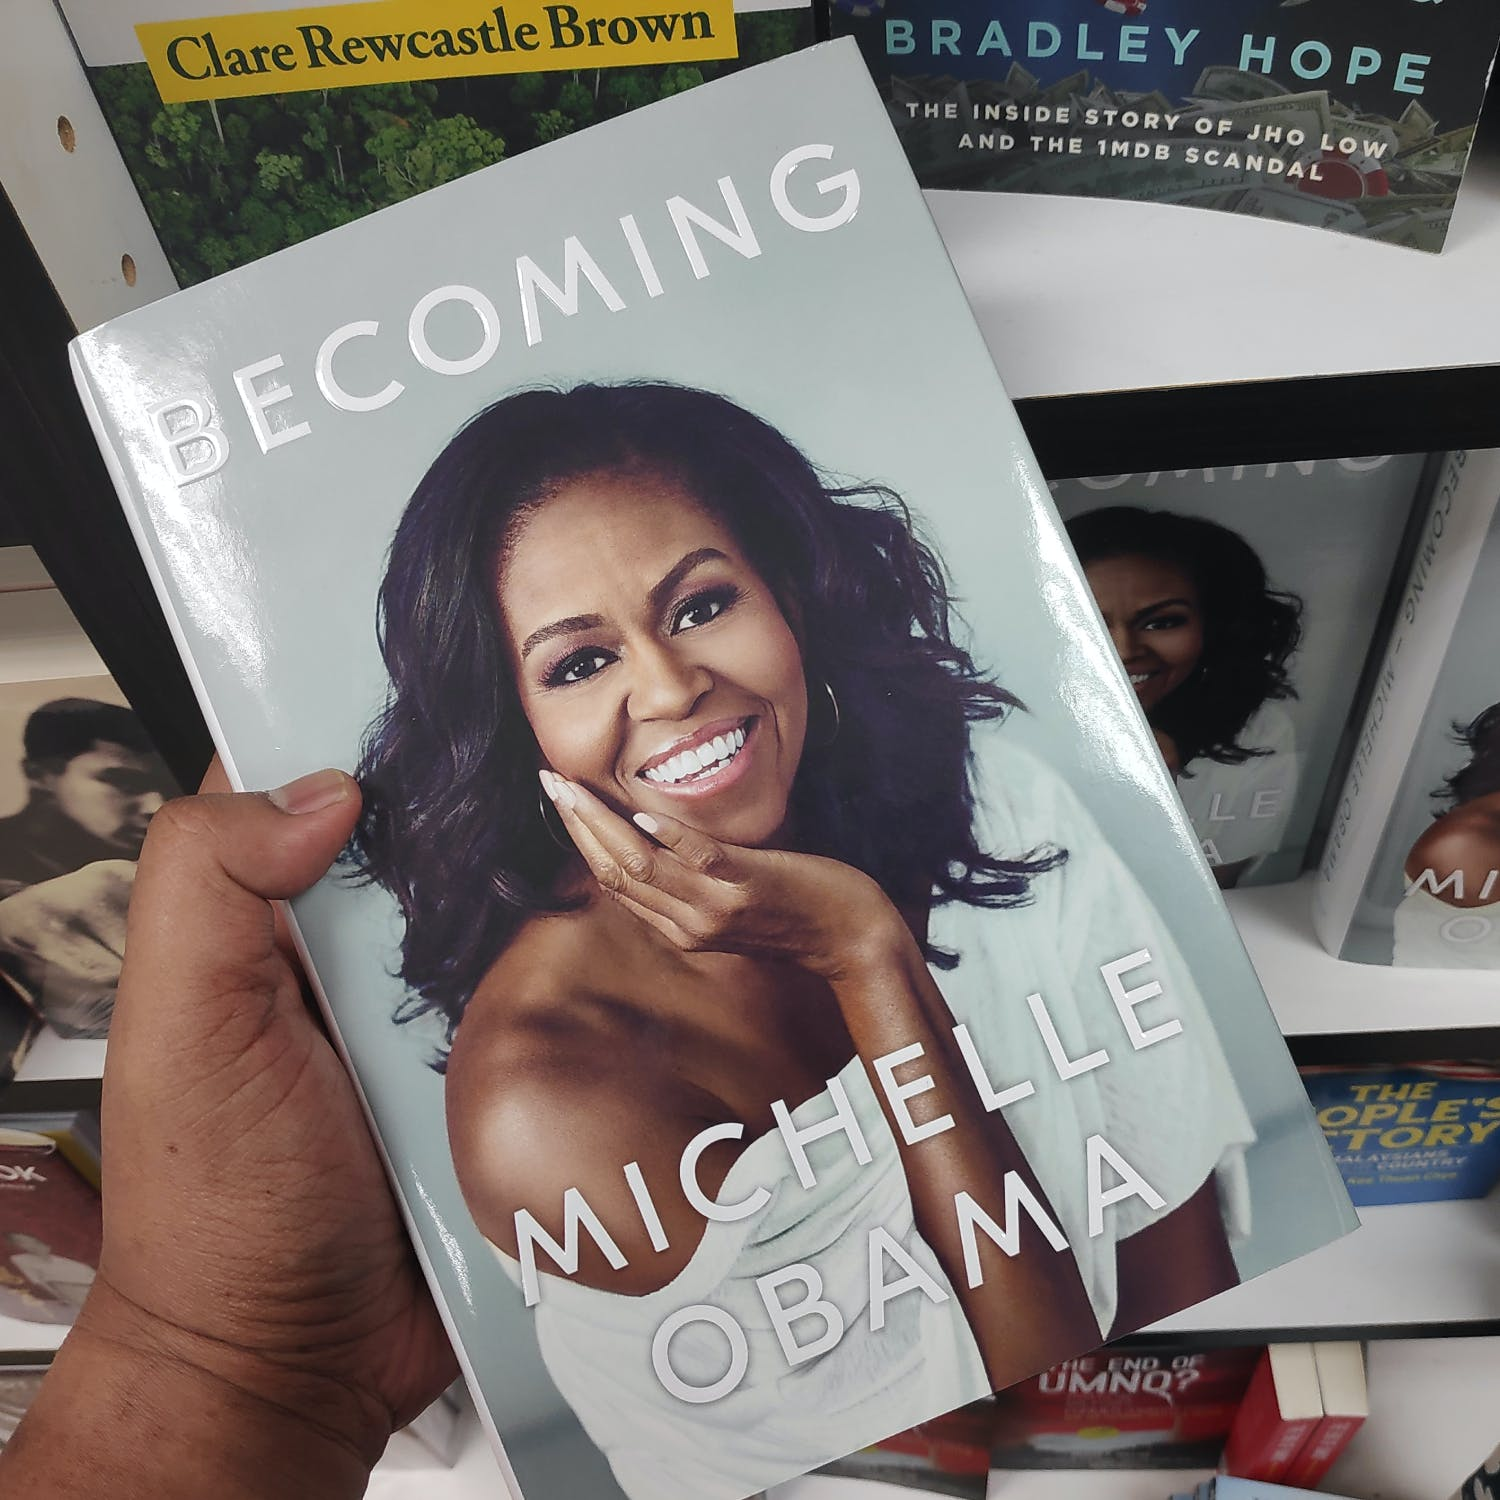 Michelle Obama's Becoming book